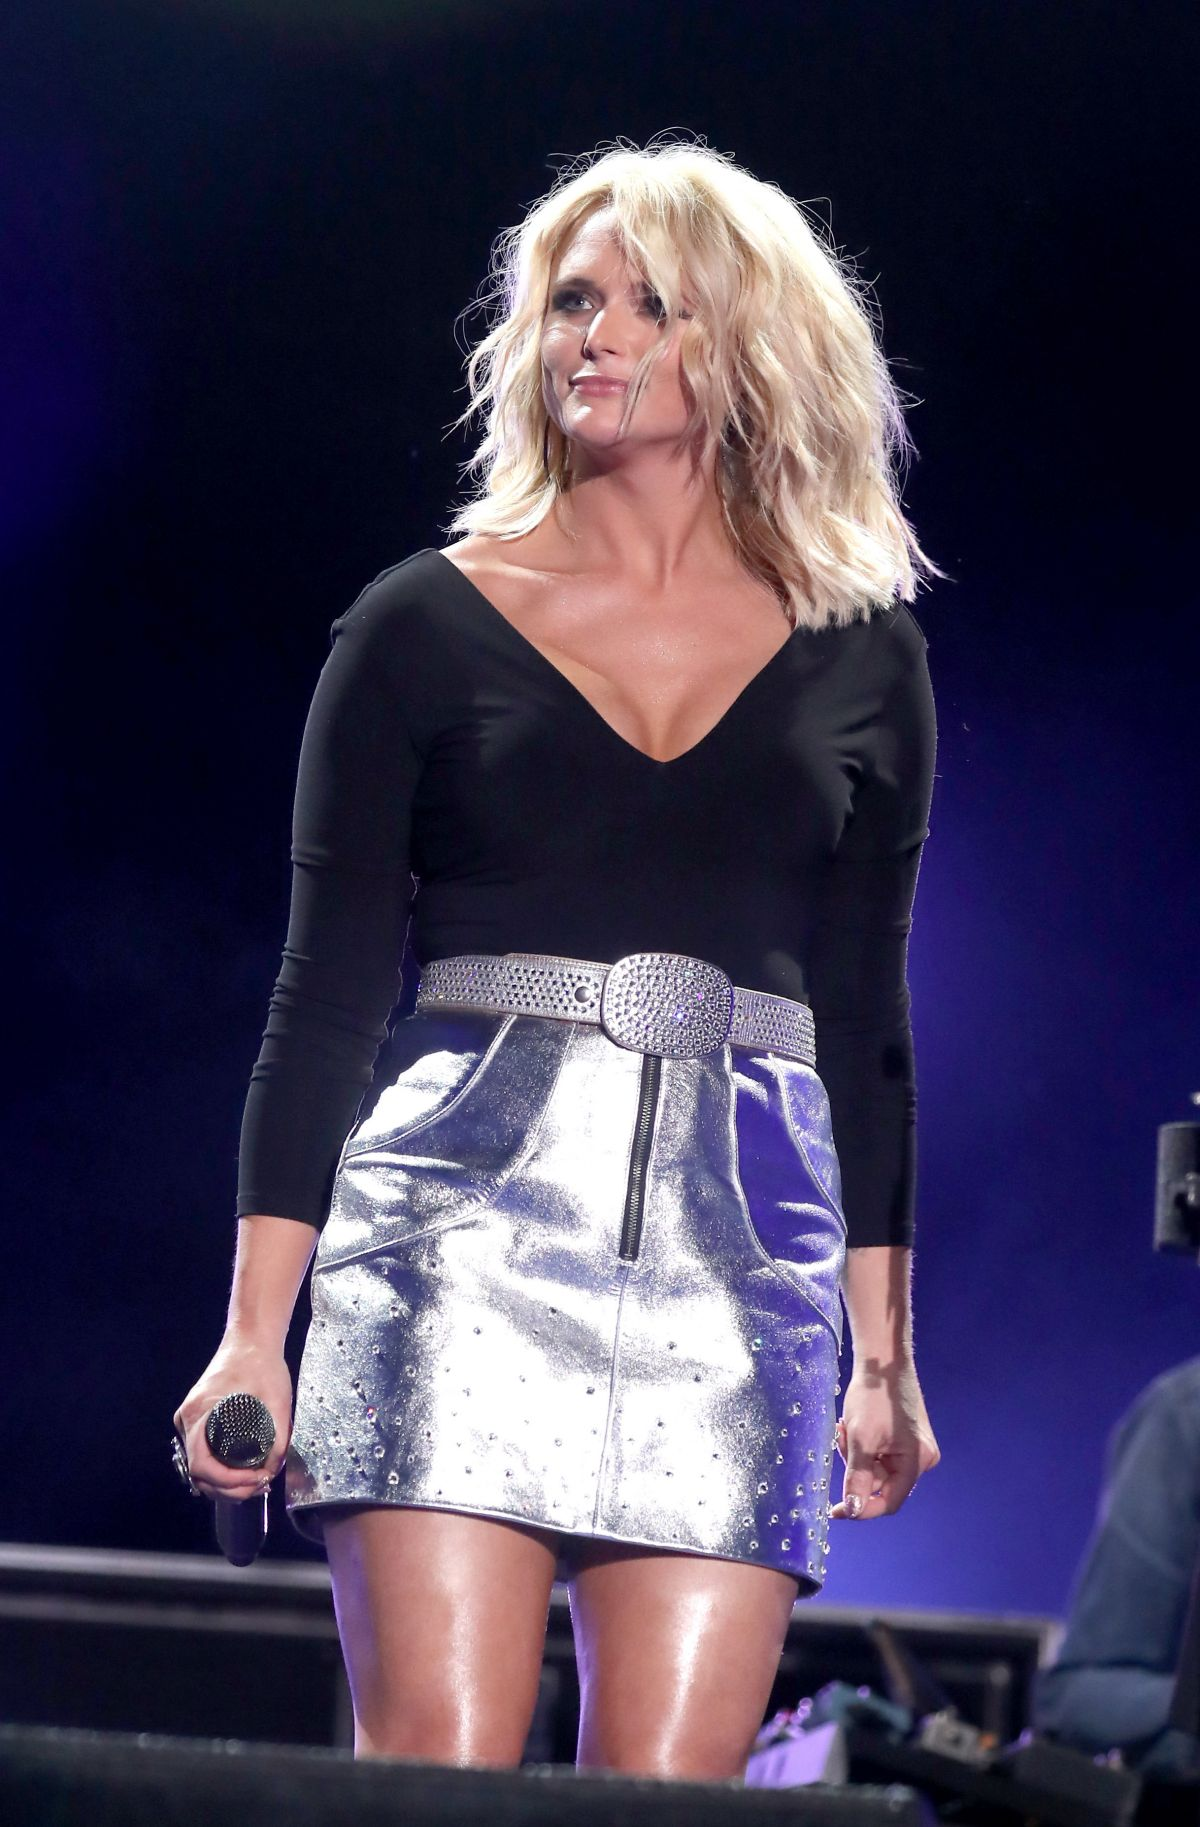 miranda lambert 2016 dating The official site of miranda lambert with tour dates, news, photos, music, lyrics, fan club, store, and more.